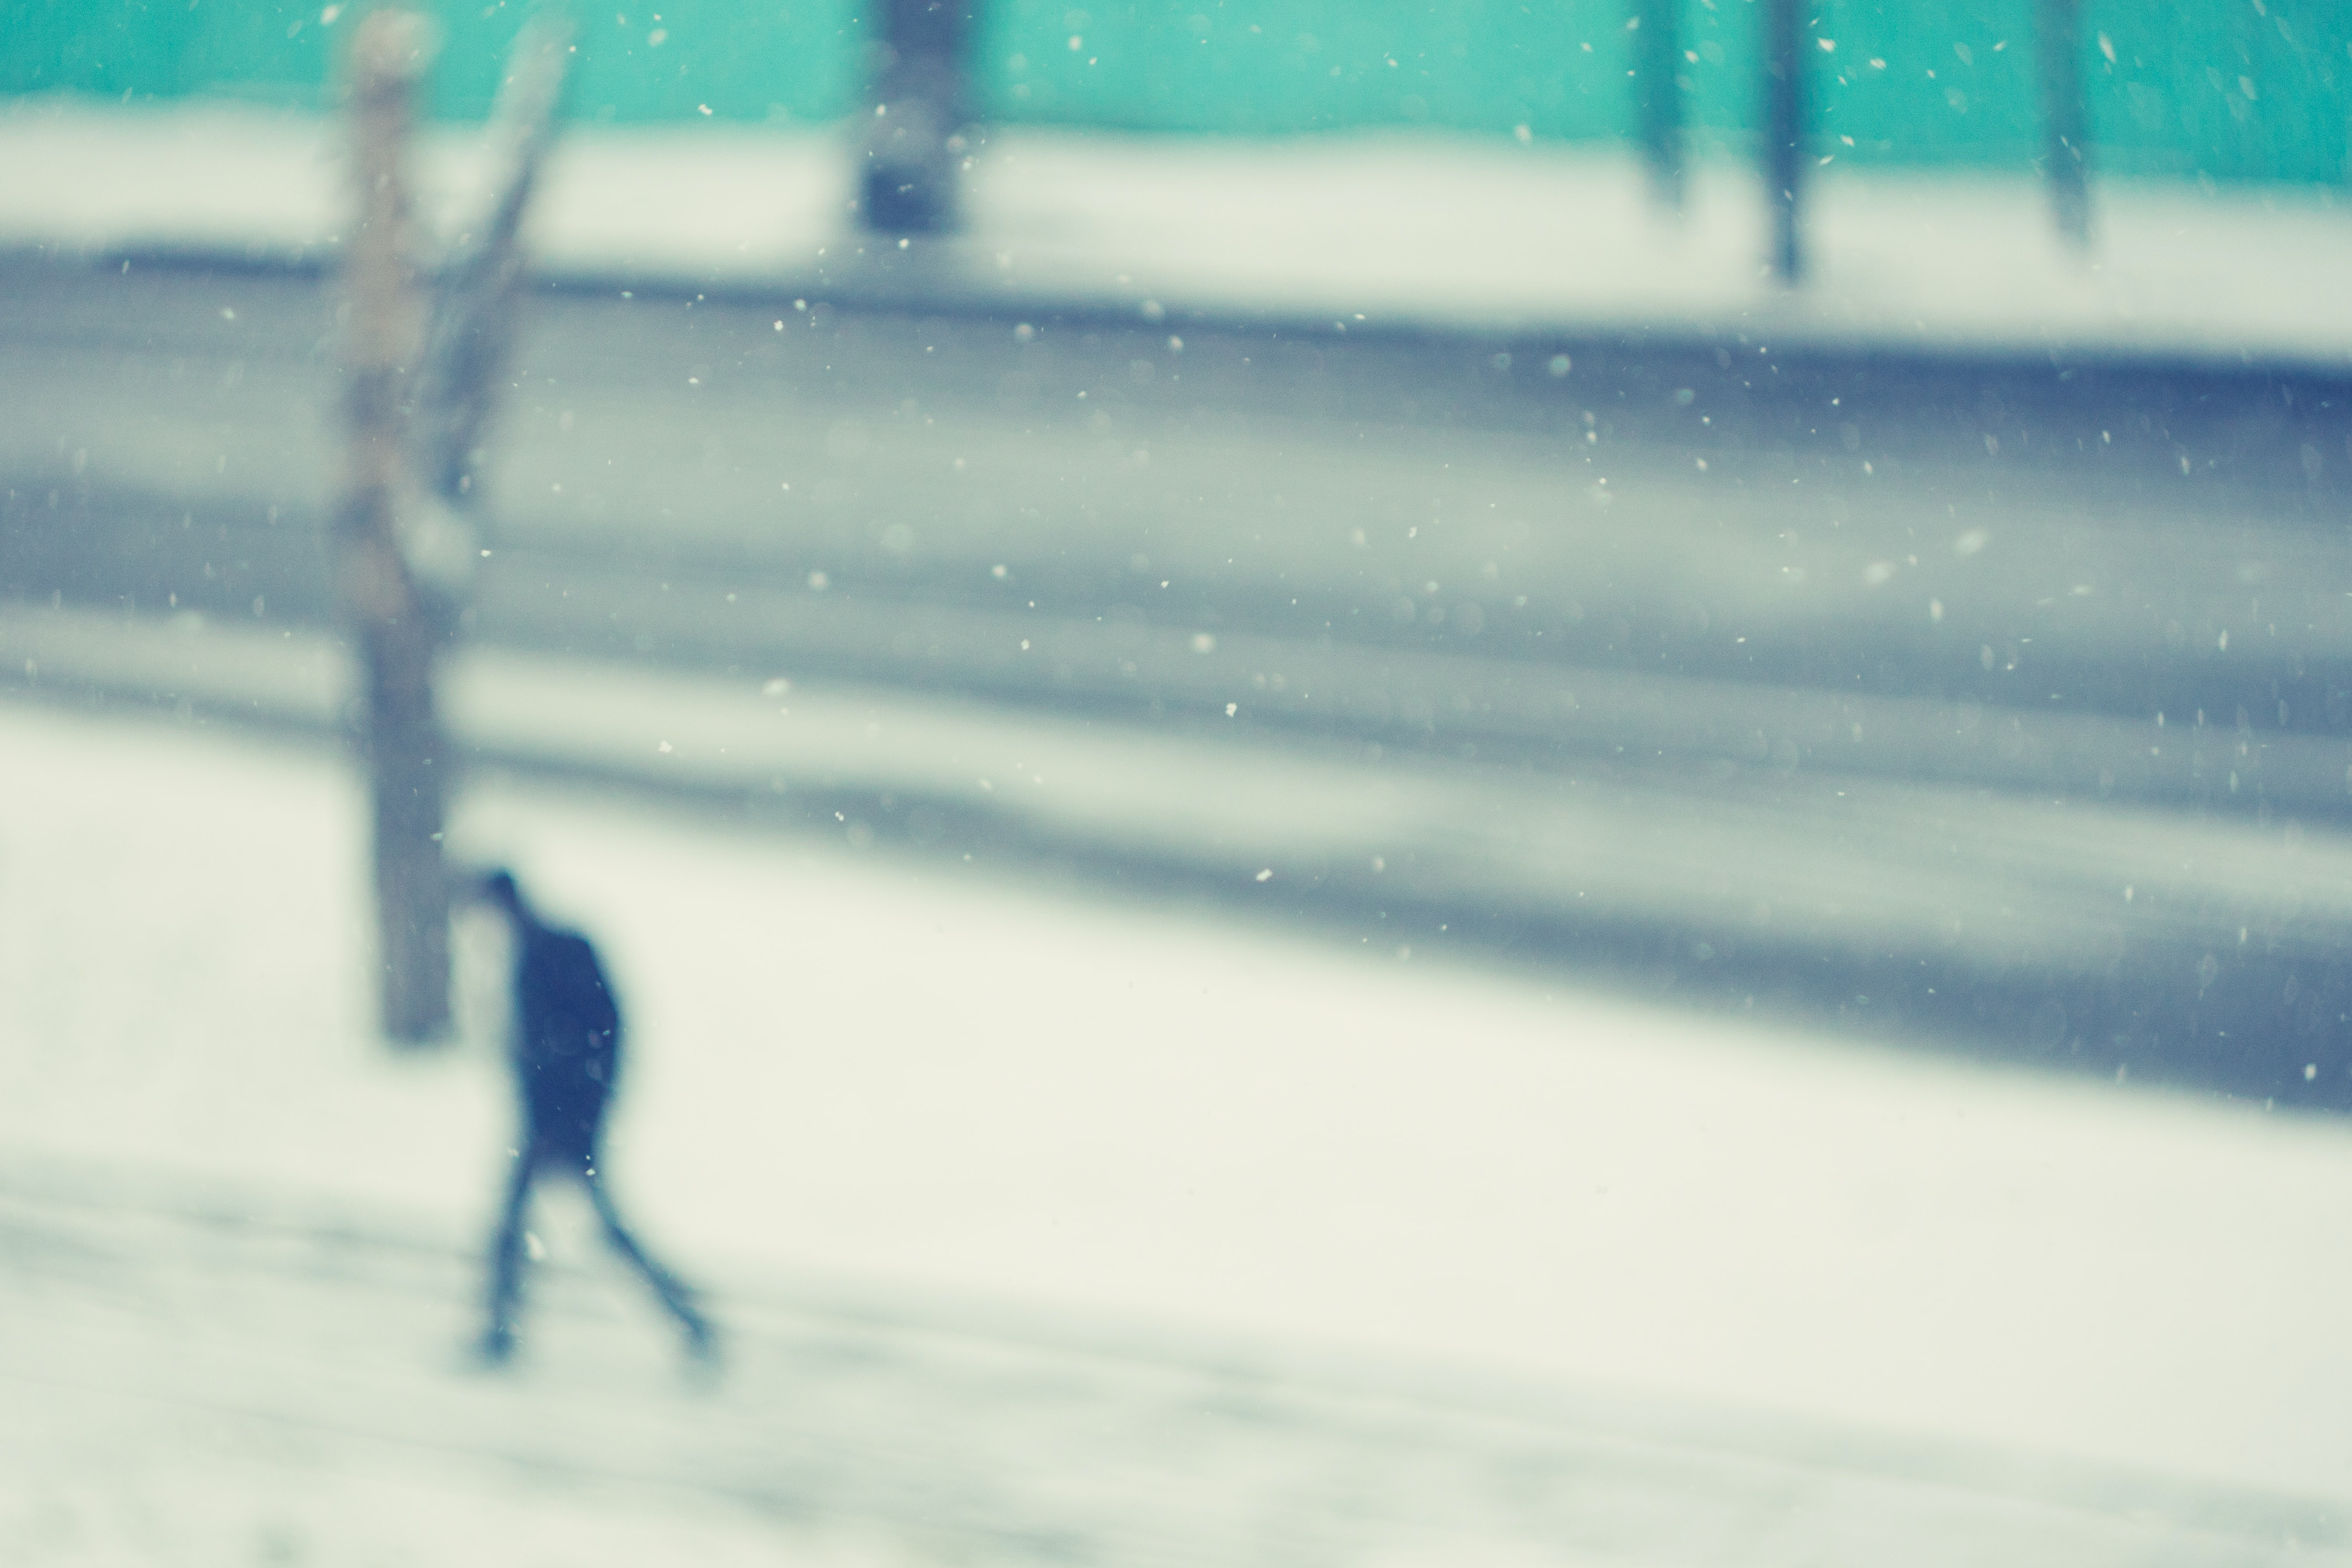 A blurry photo of a person walking in snow on the side of a road in Tomsk